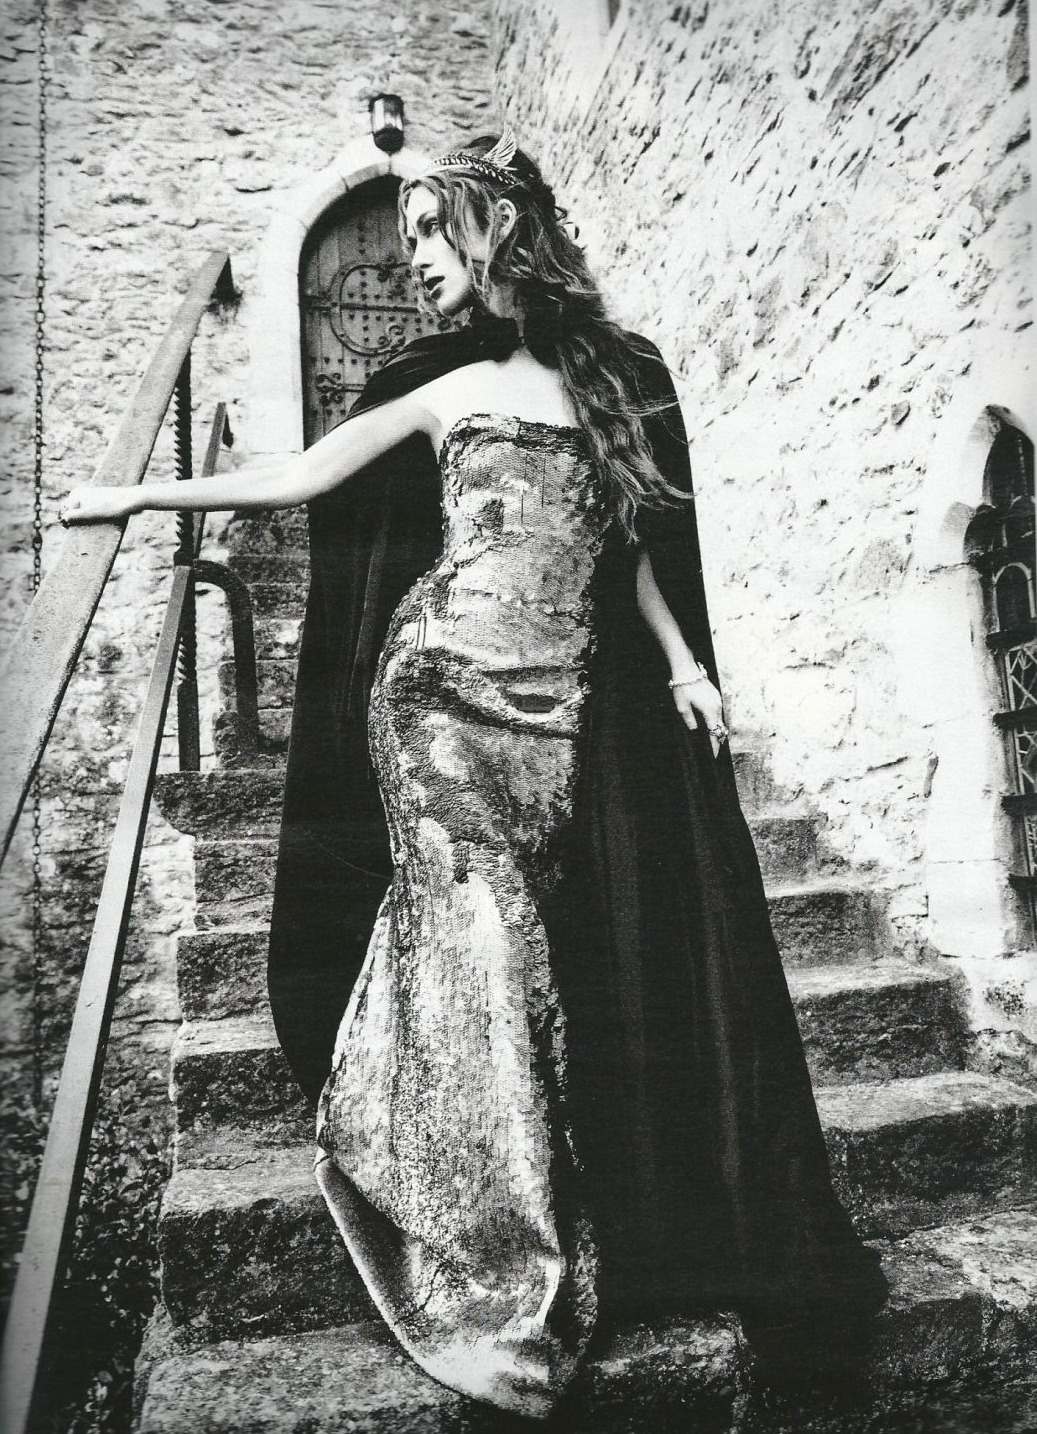 Keira Knightley photographed by Ellen von Unwerth for Harper's Bazaar UK, September 2012